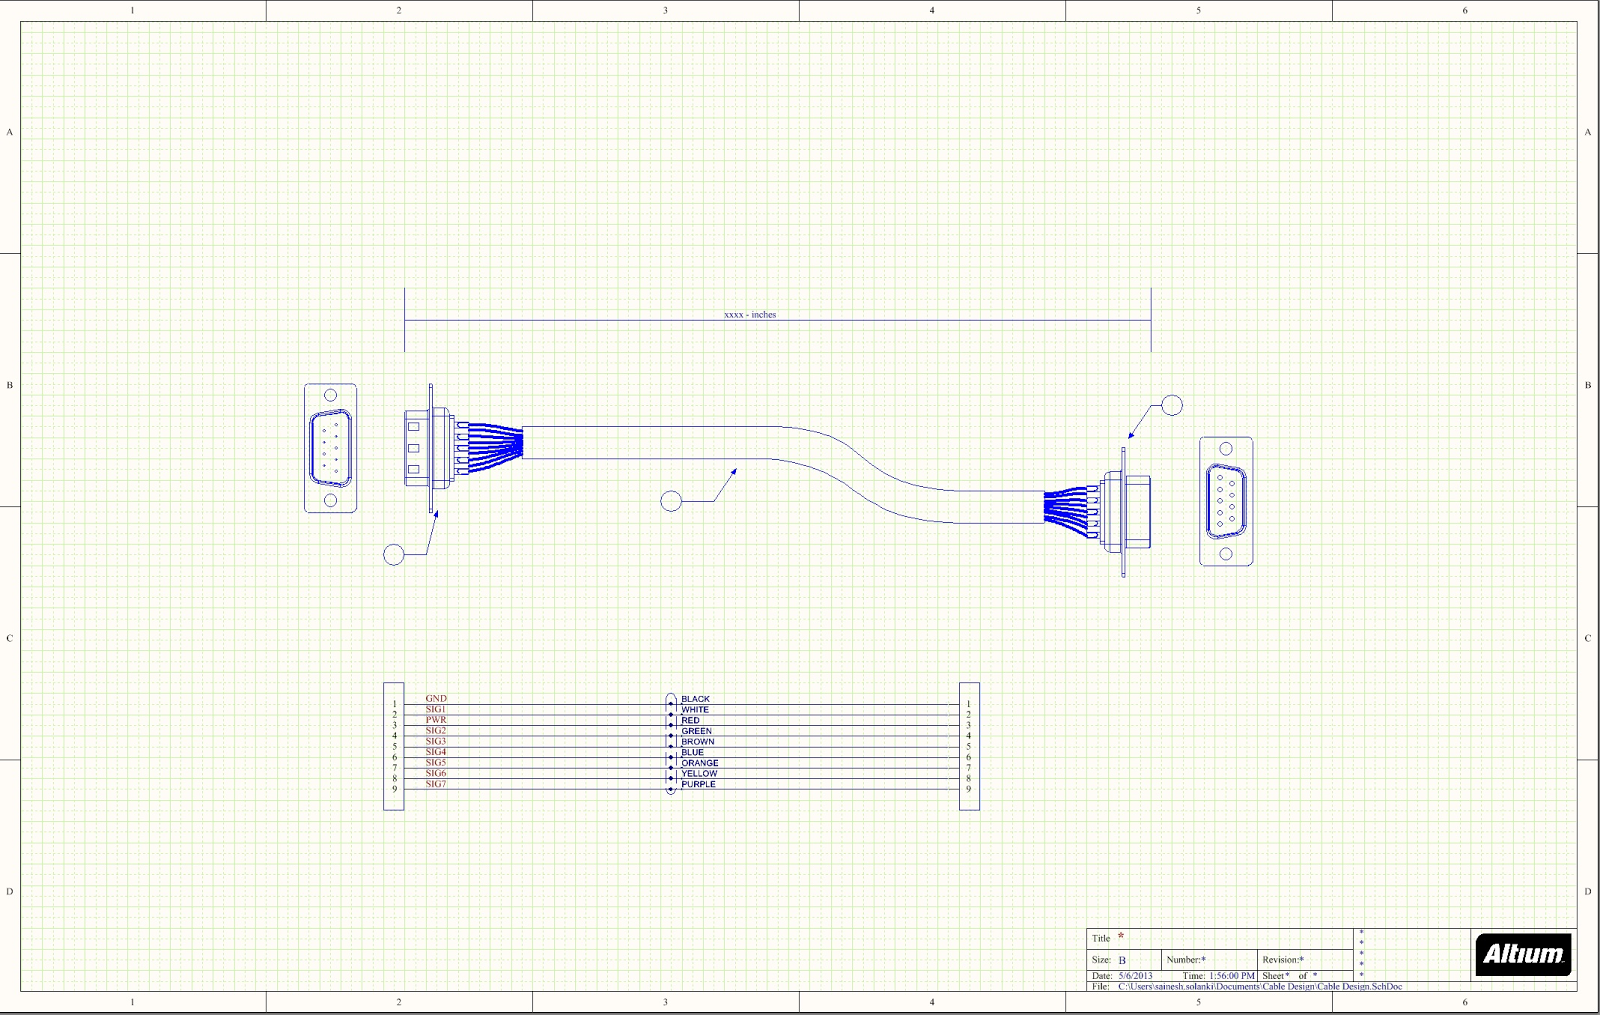 automotive wiring diagram drawing software cable assembly drawings for pcb cable assemblies part 1  cable assembly drawings for pcb cable